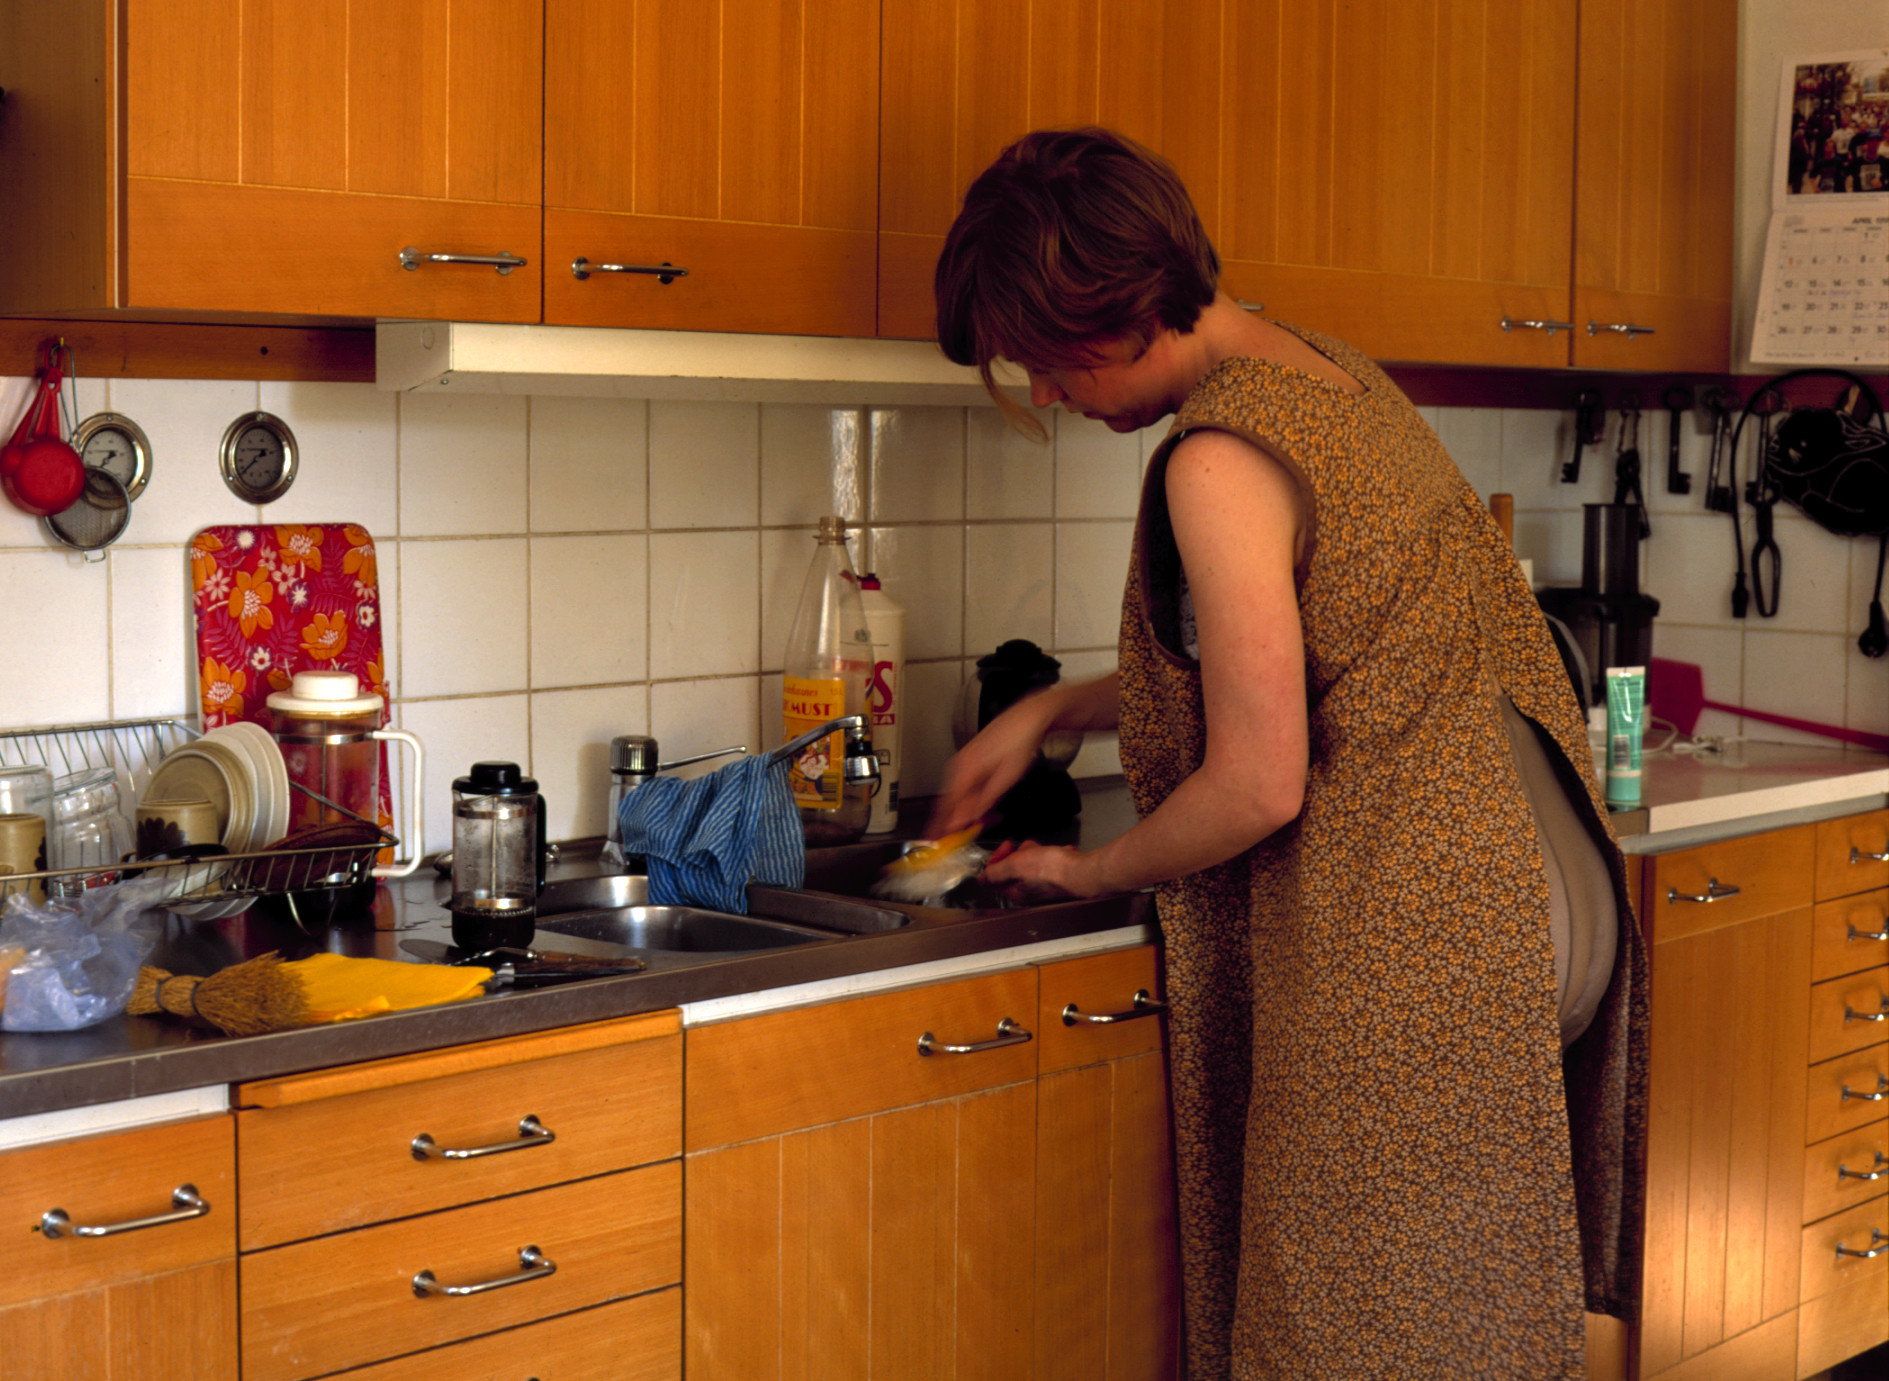 Me in My Mother's Clothes: the Kitchen 1999